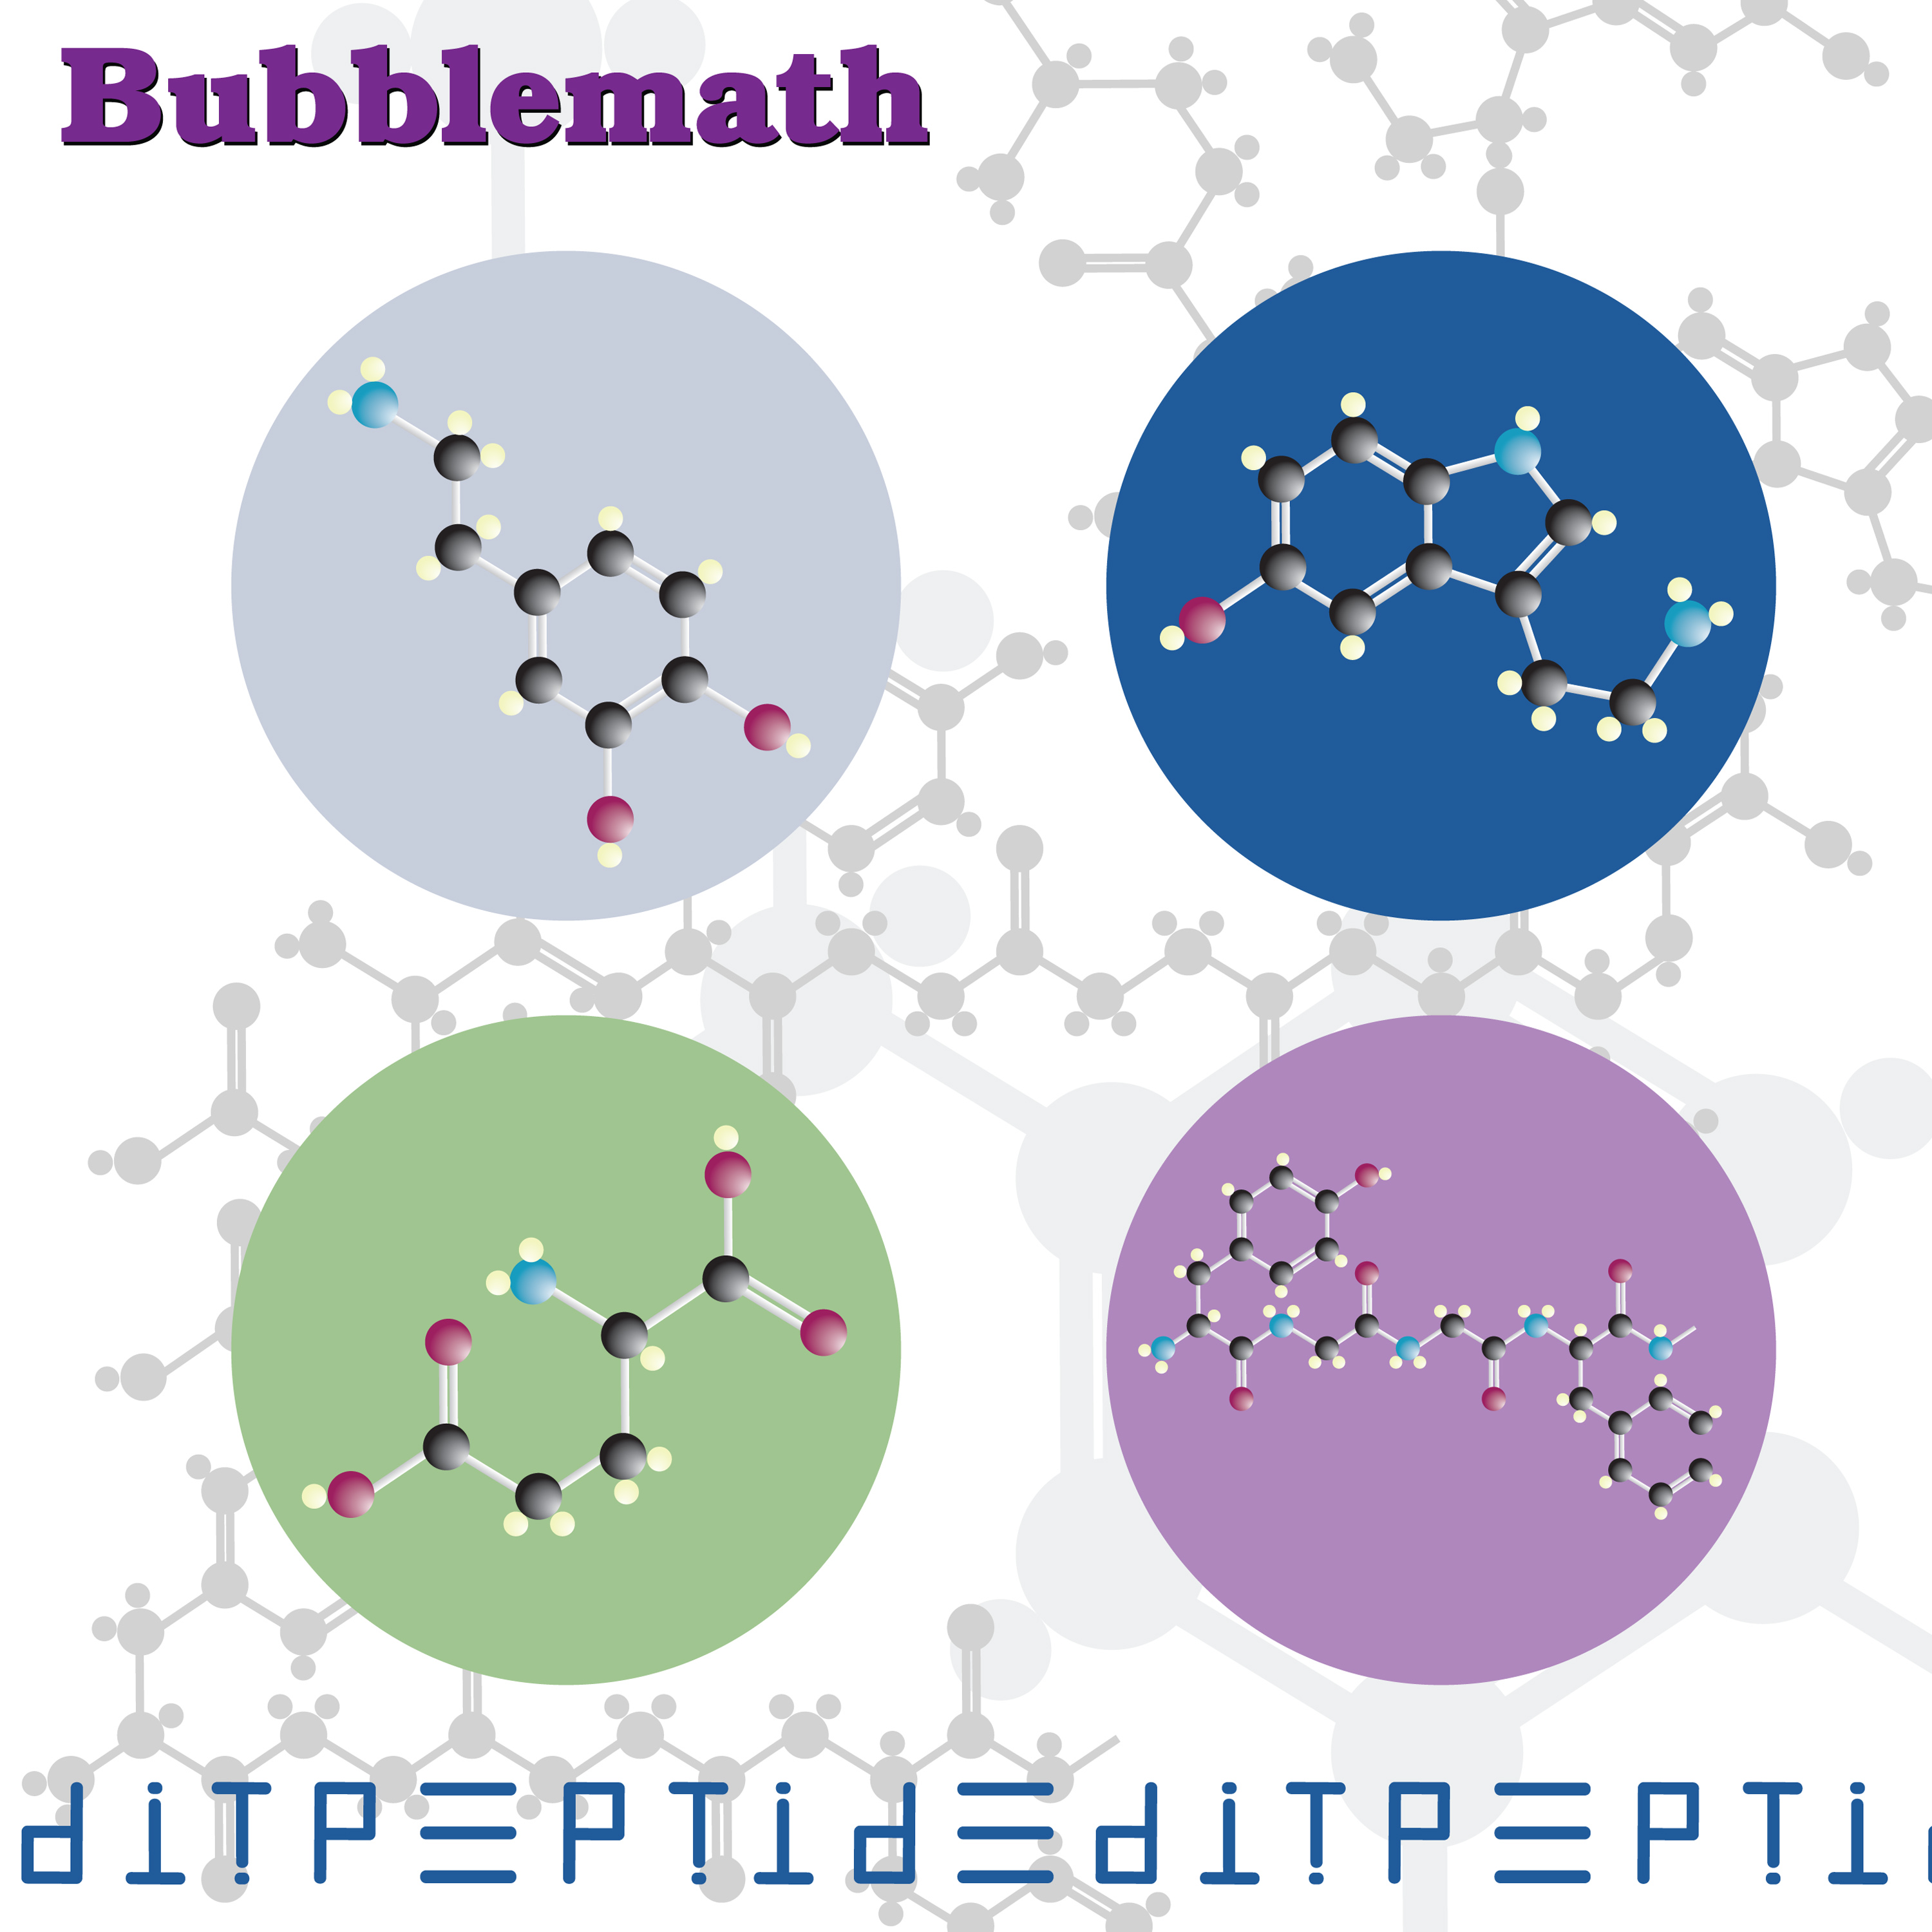 cover_art-Bubblemath-Edit_Peptide.jpg